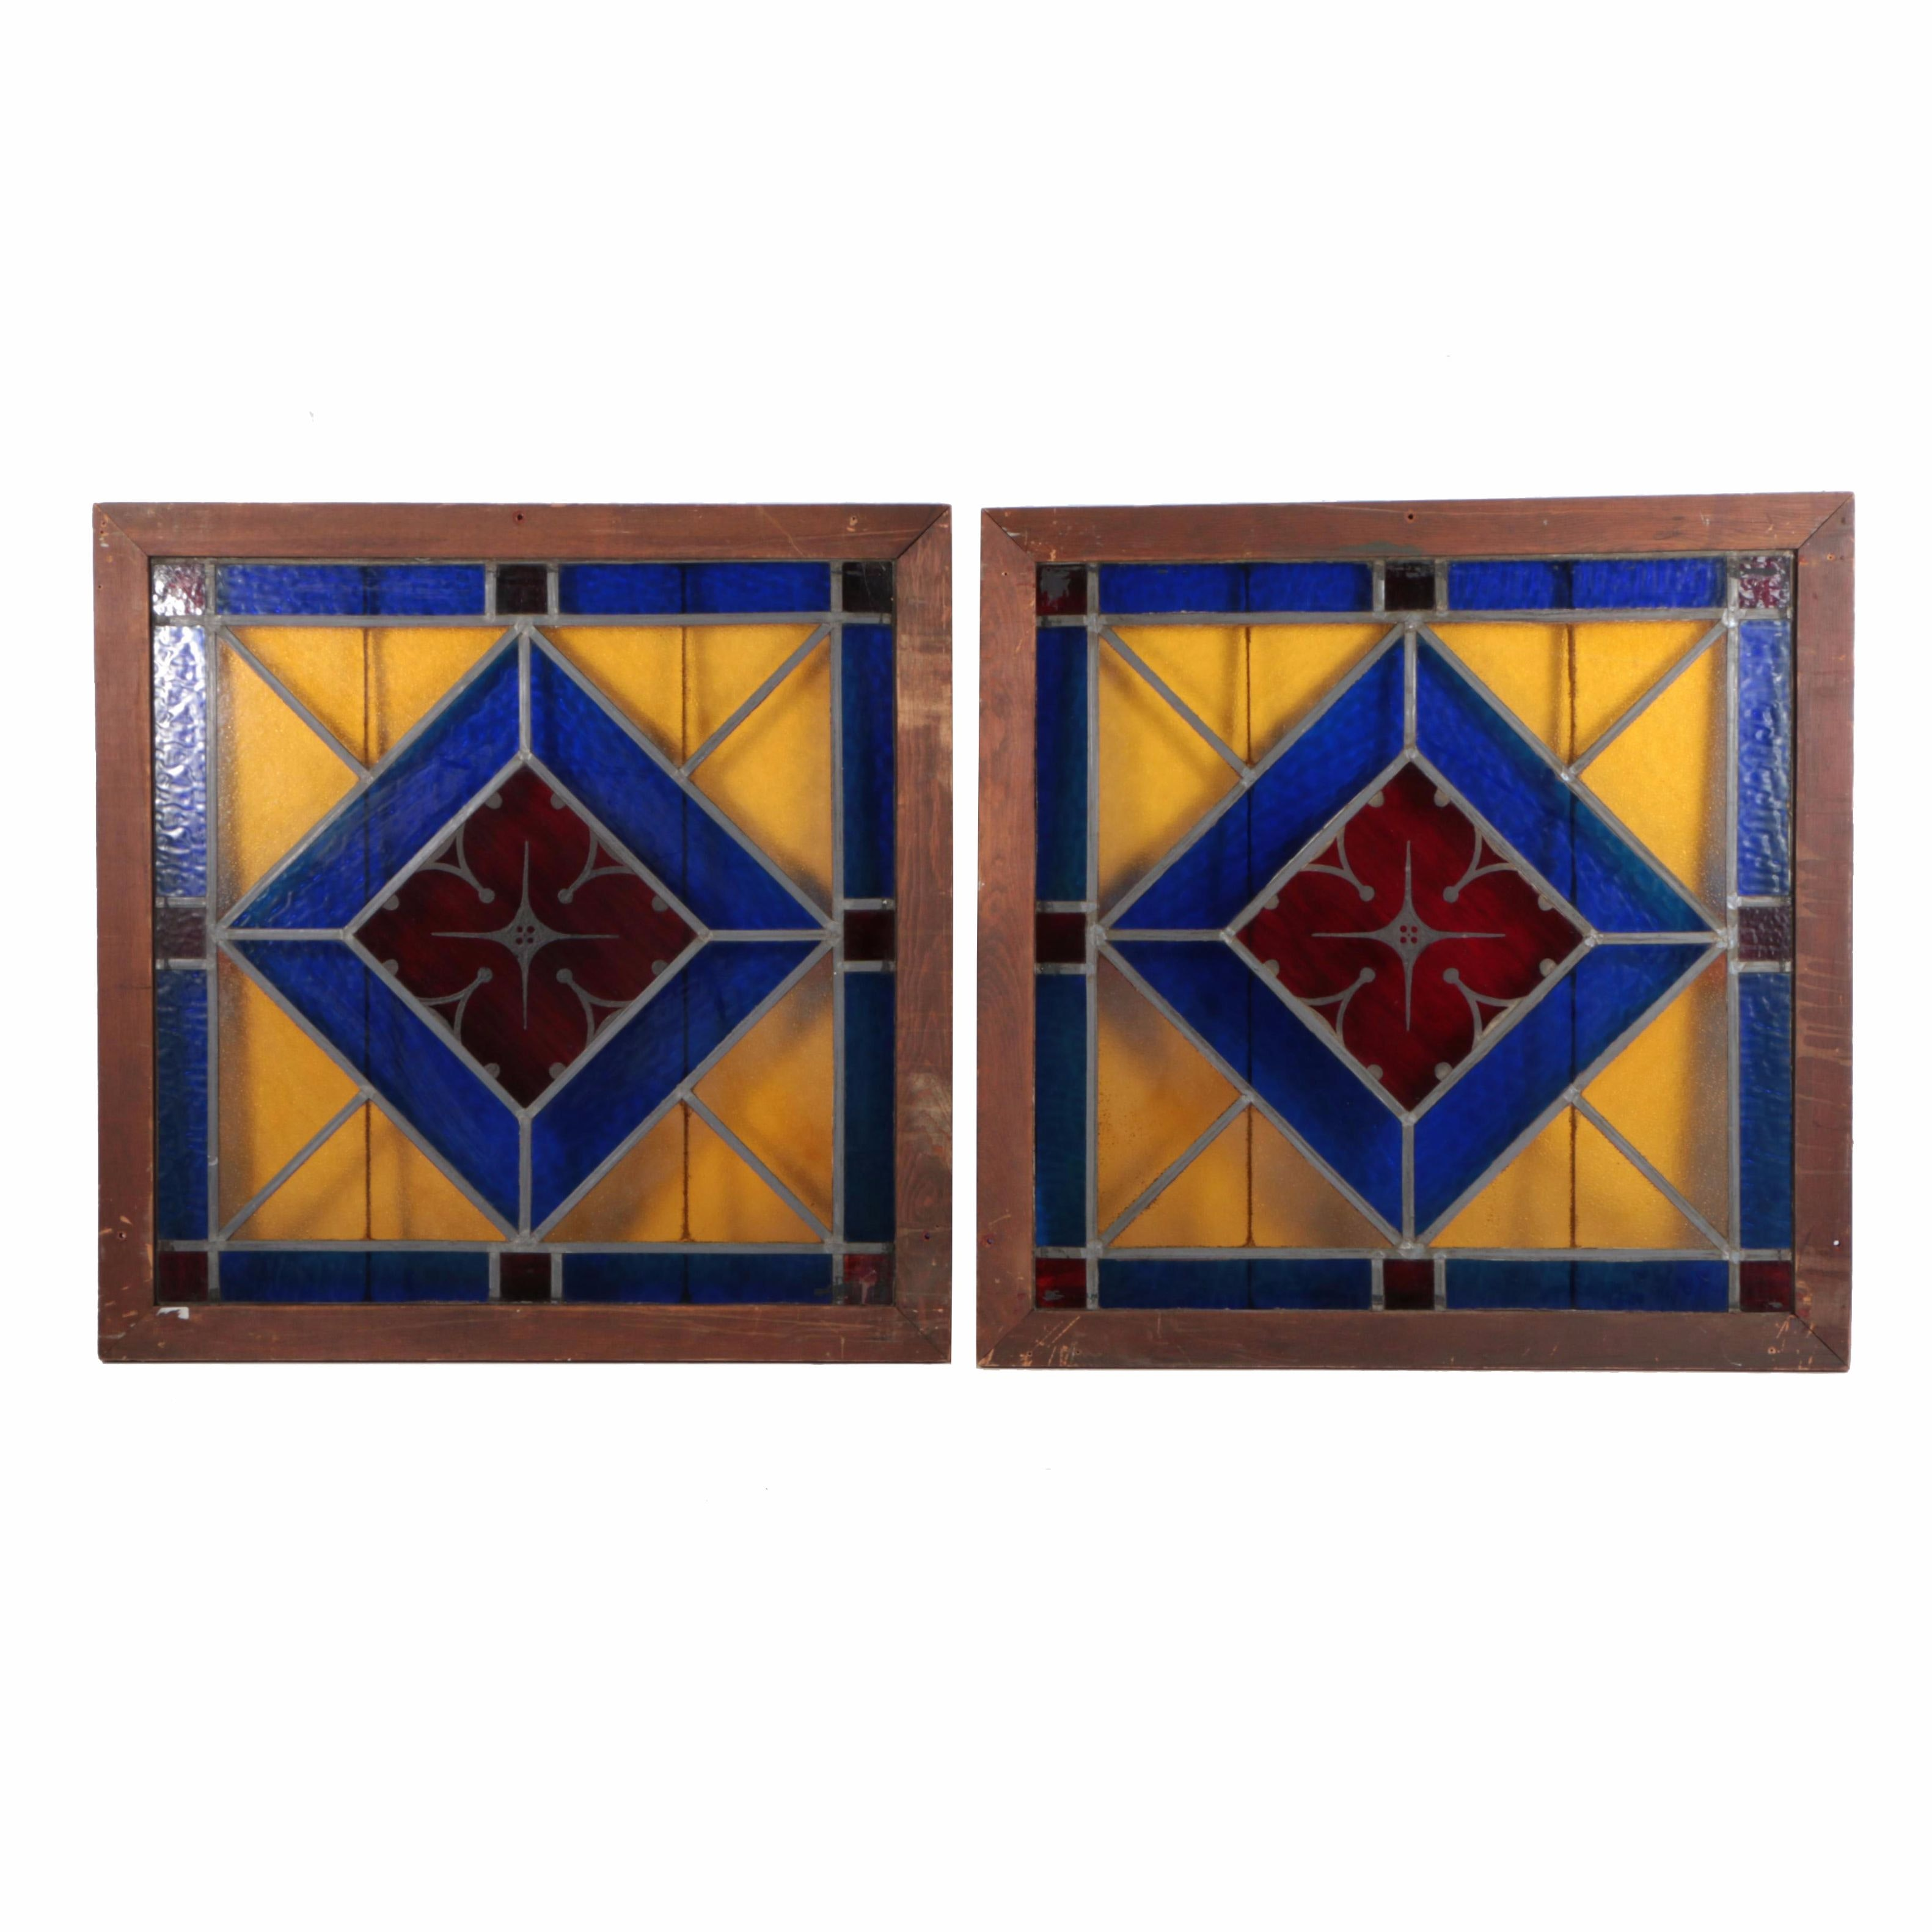 Stained Glass in Wooden Frames